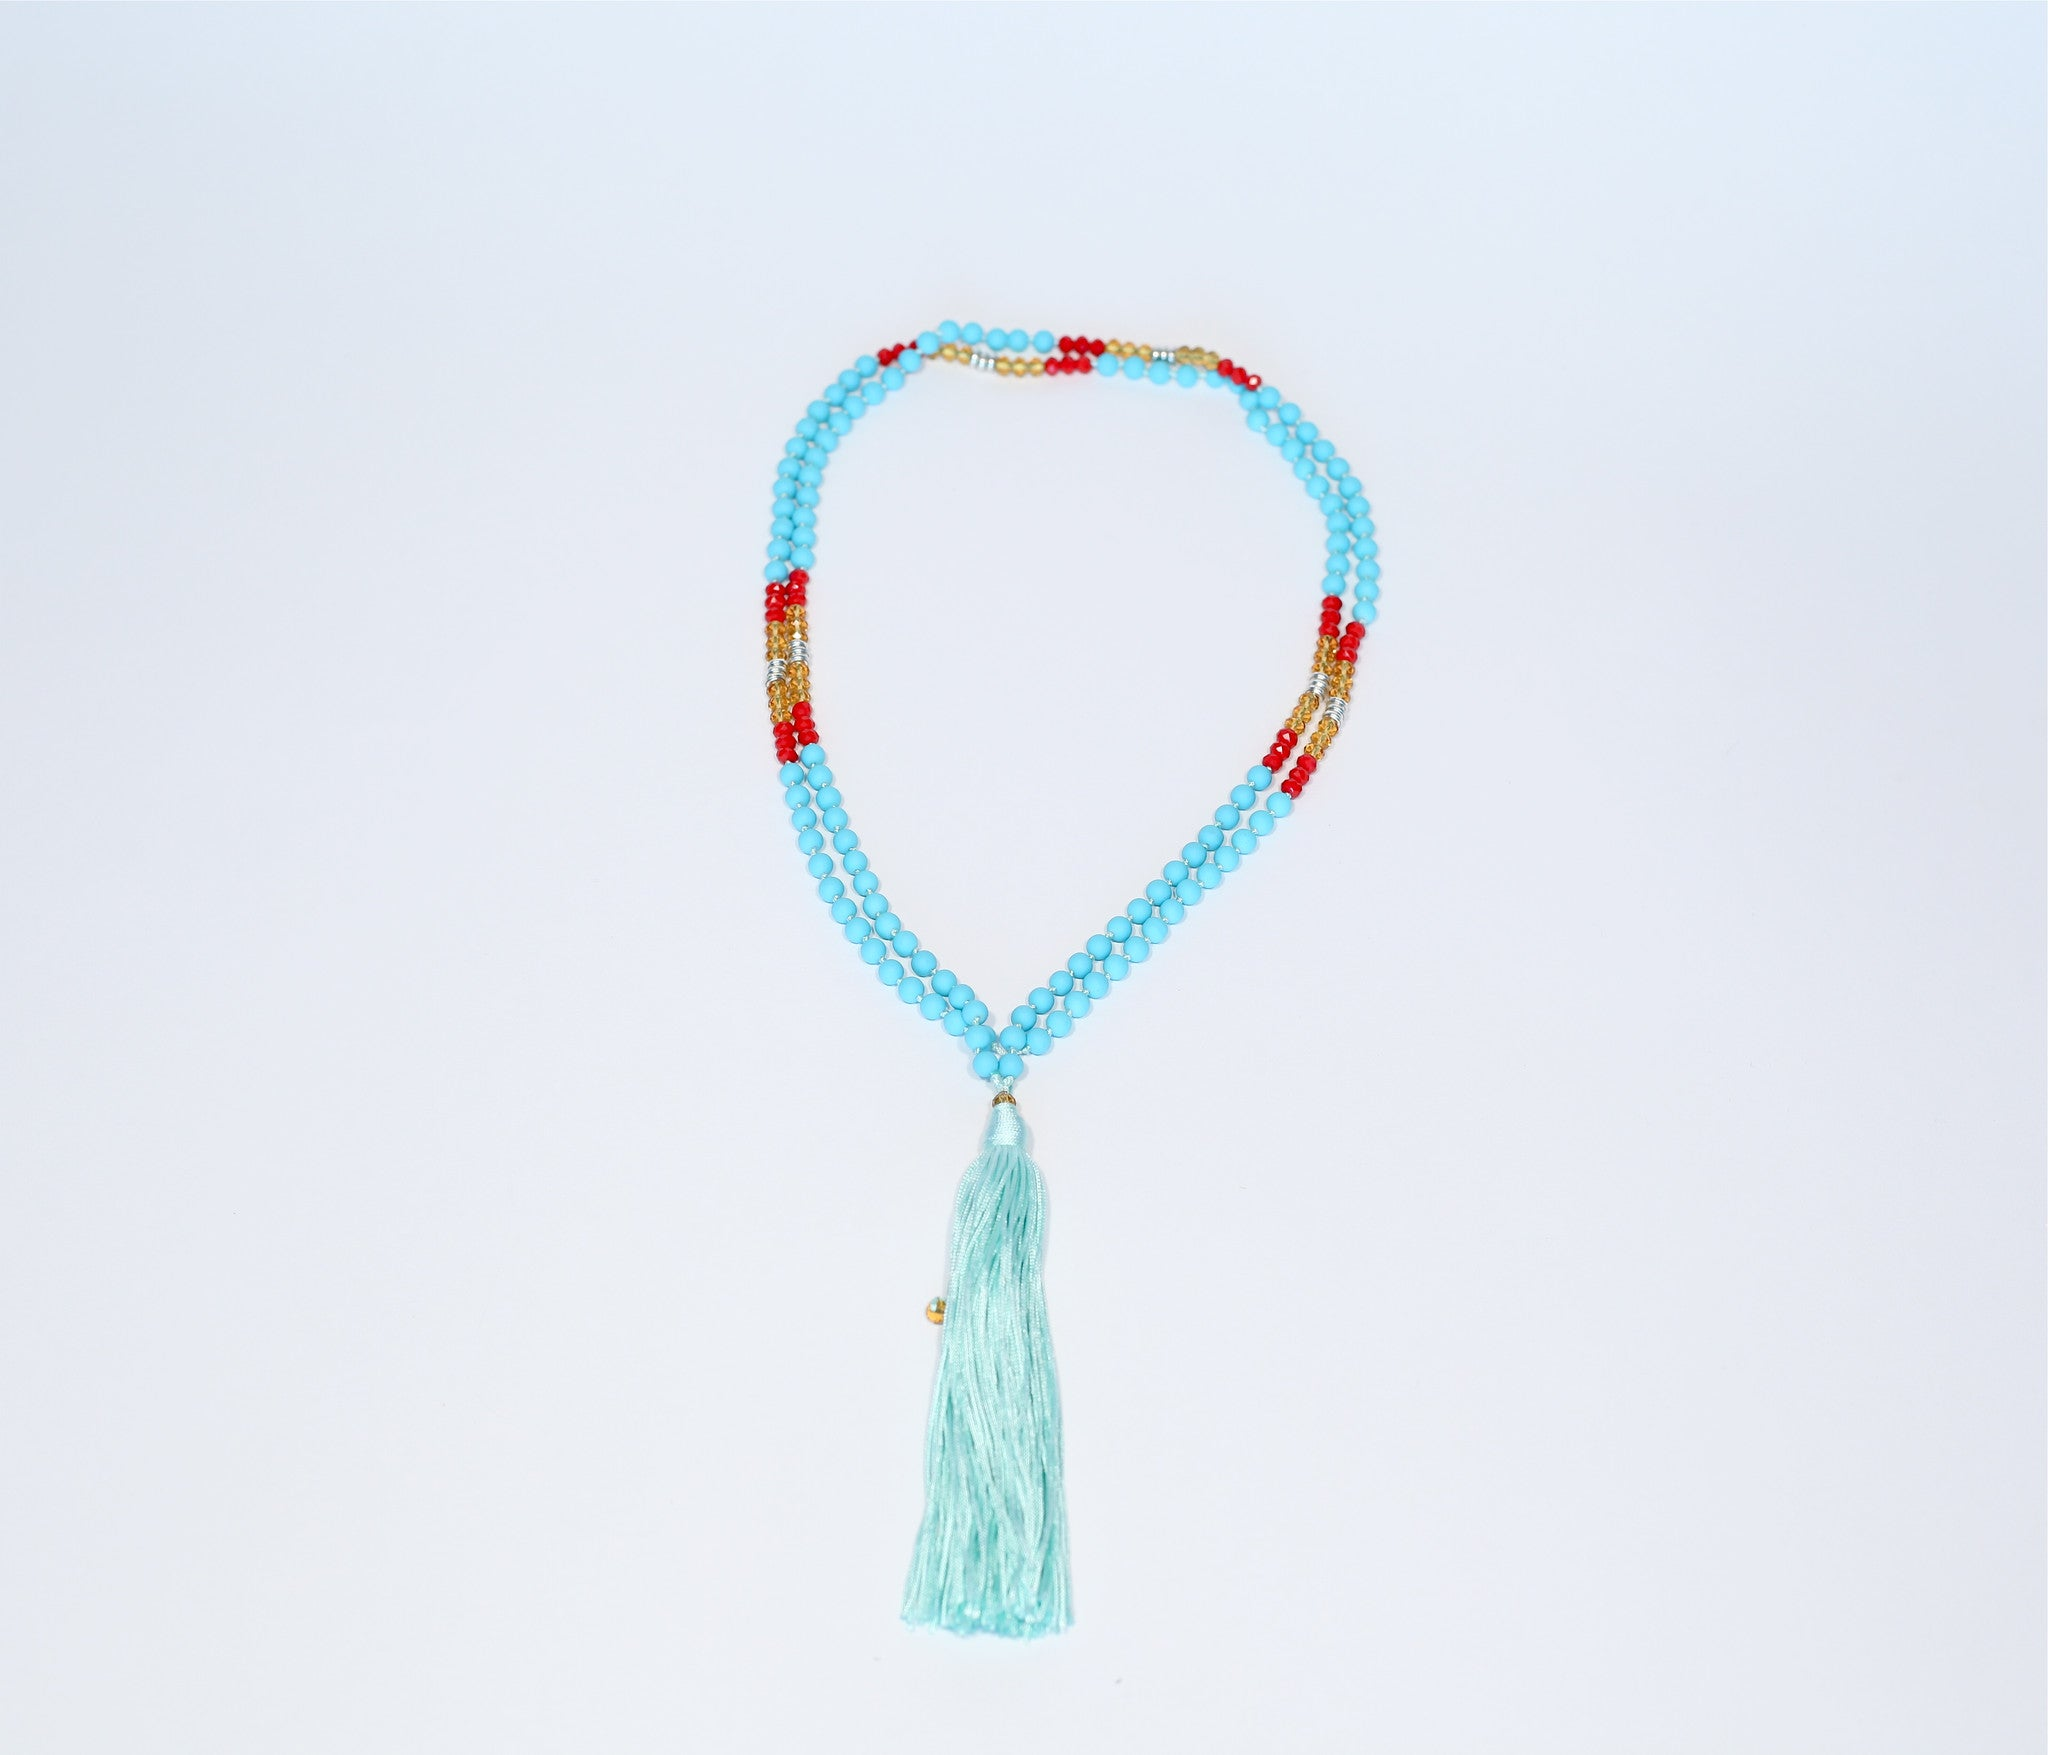 Prayer Necklace - Teal Tassel (teal, red, silver, gold beads)